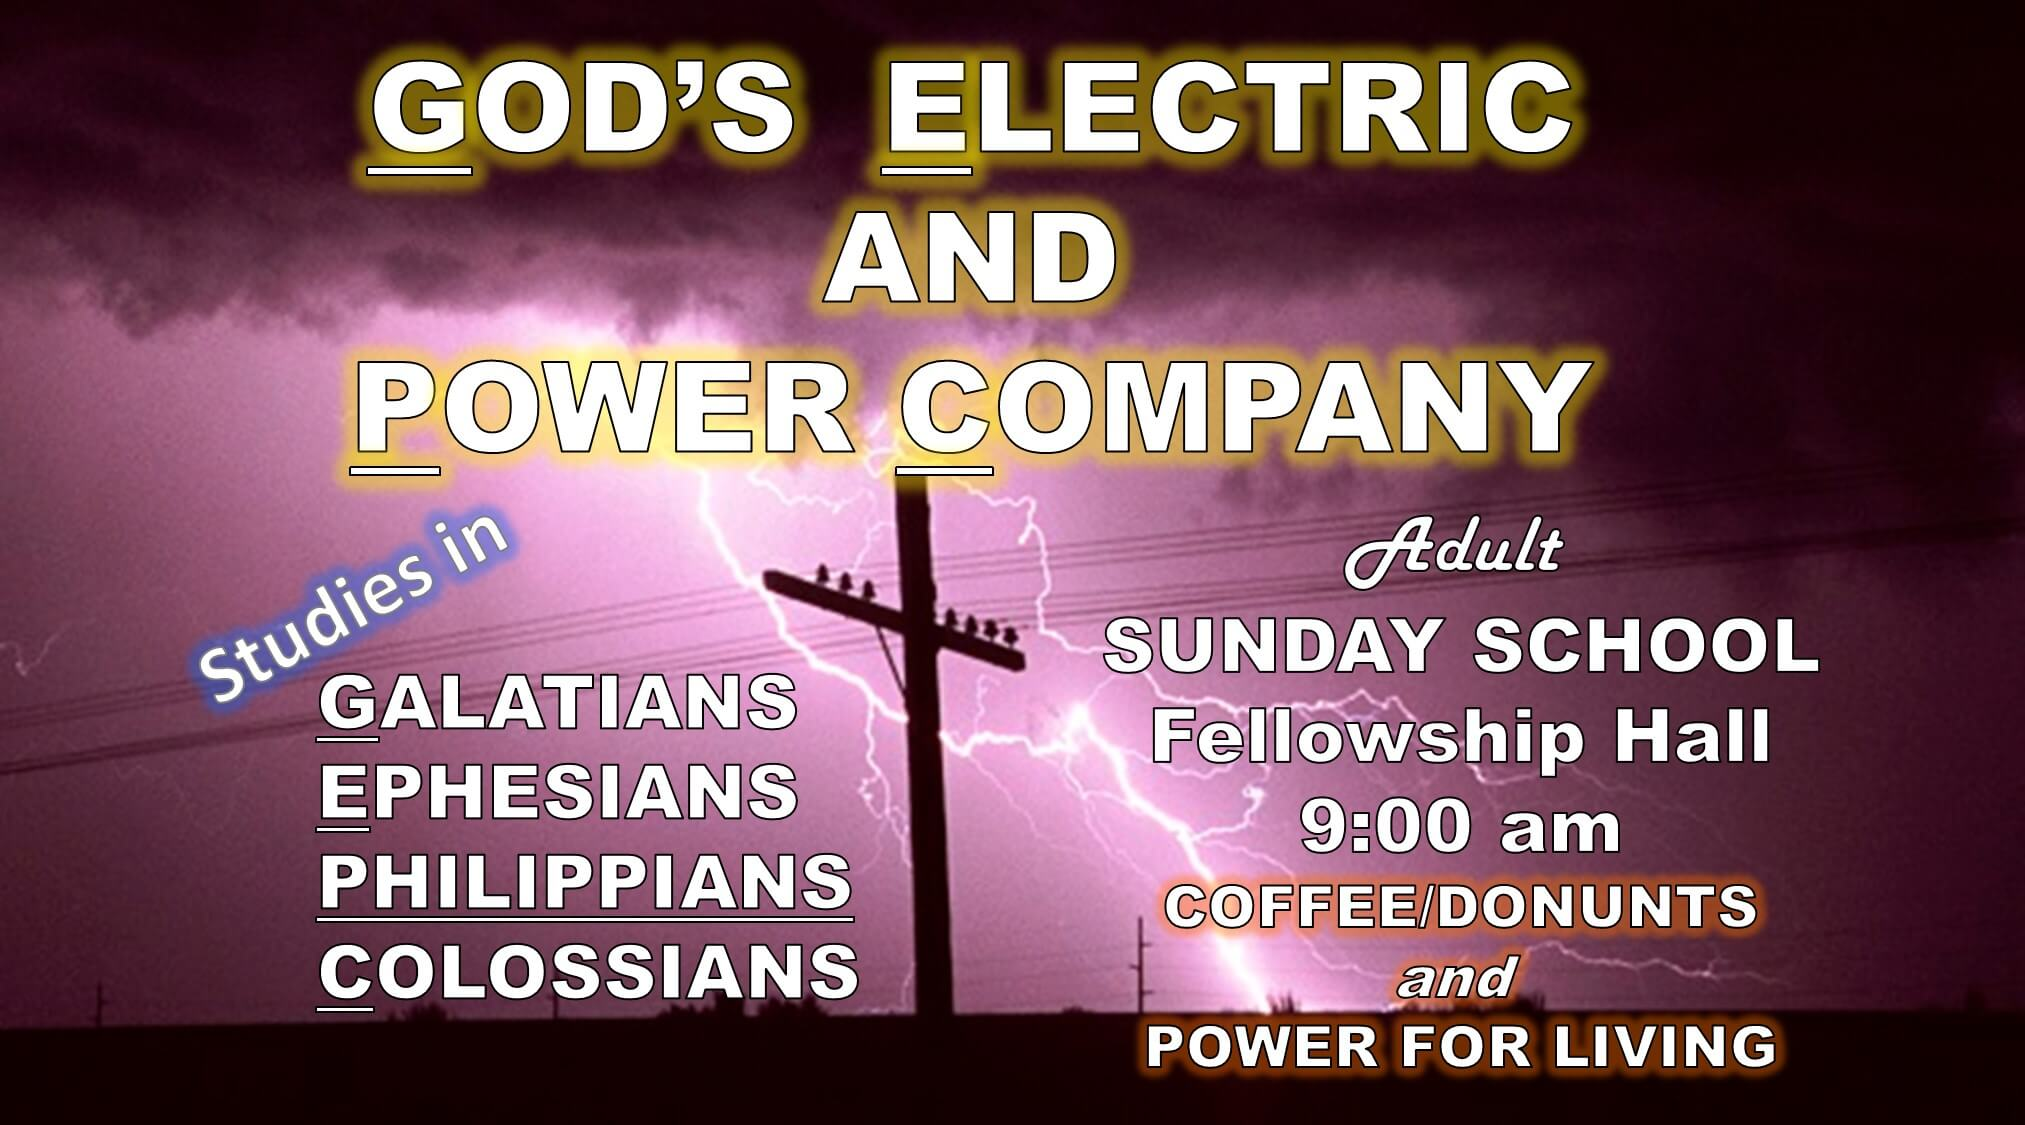 God's Electric Power Company Banner